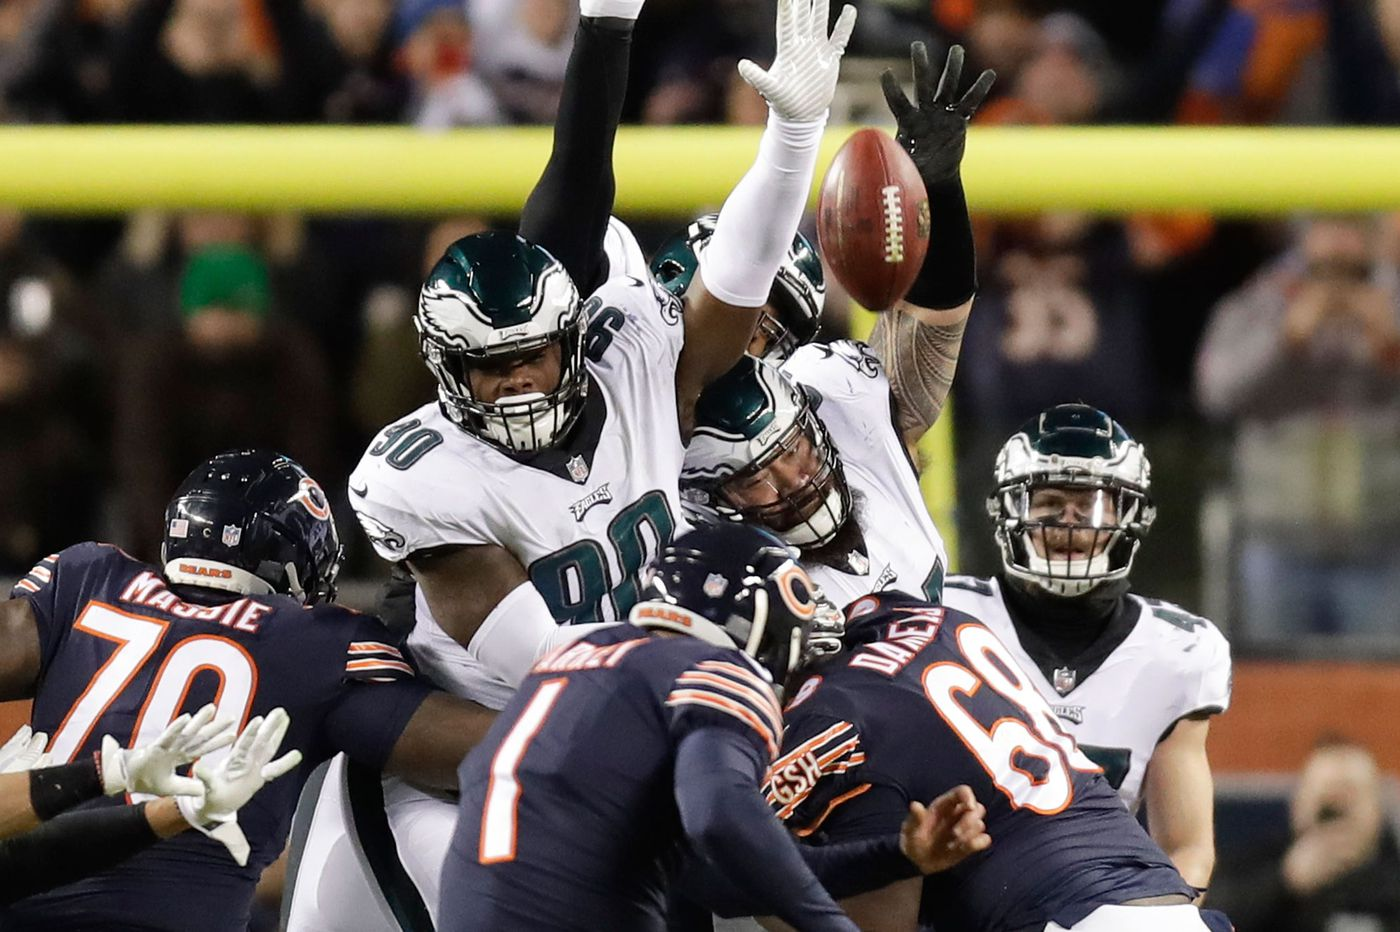 Eagles' Treyvon Hester tipped Cody Parkey's missed field goal in playoff win over Bears